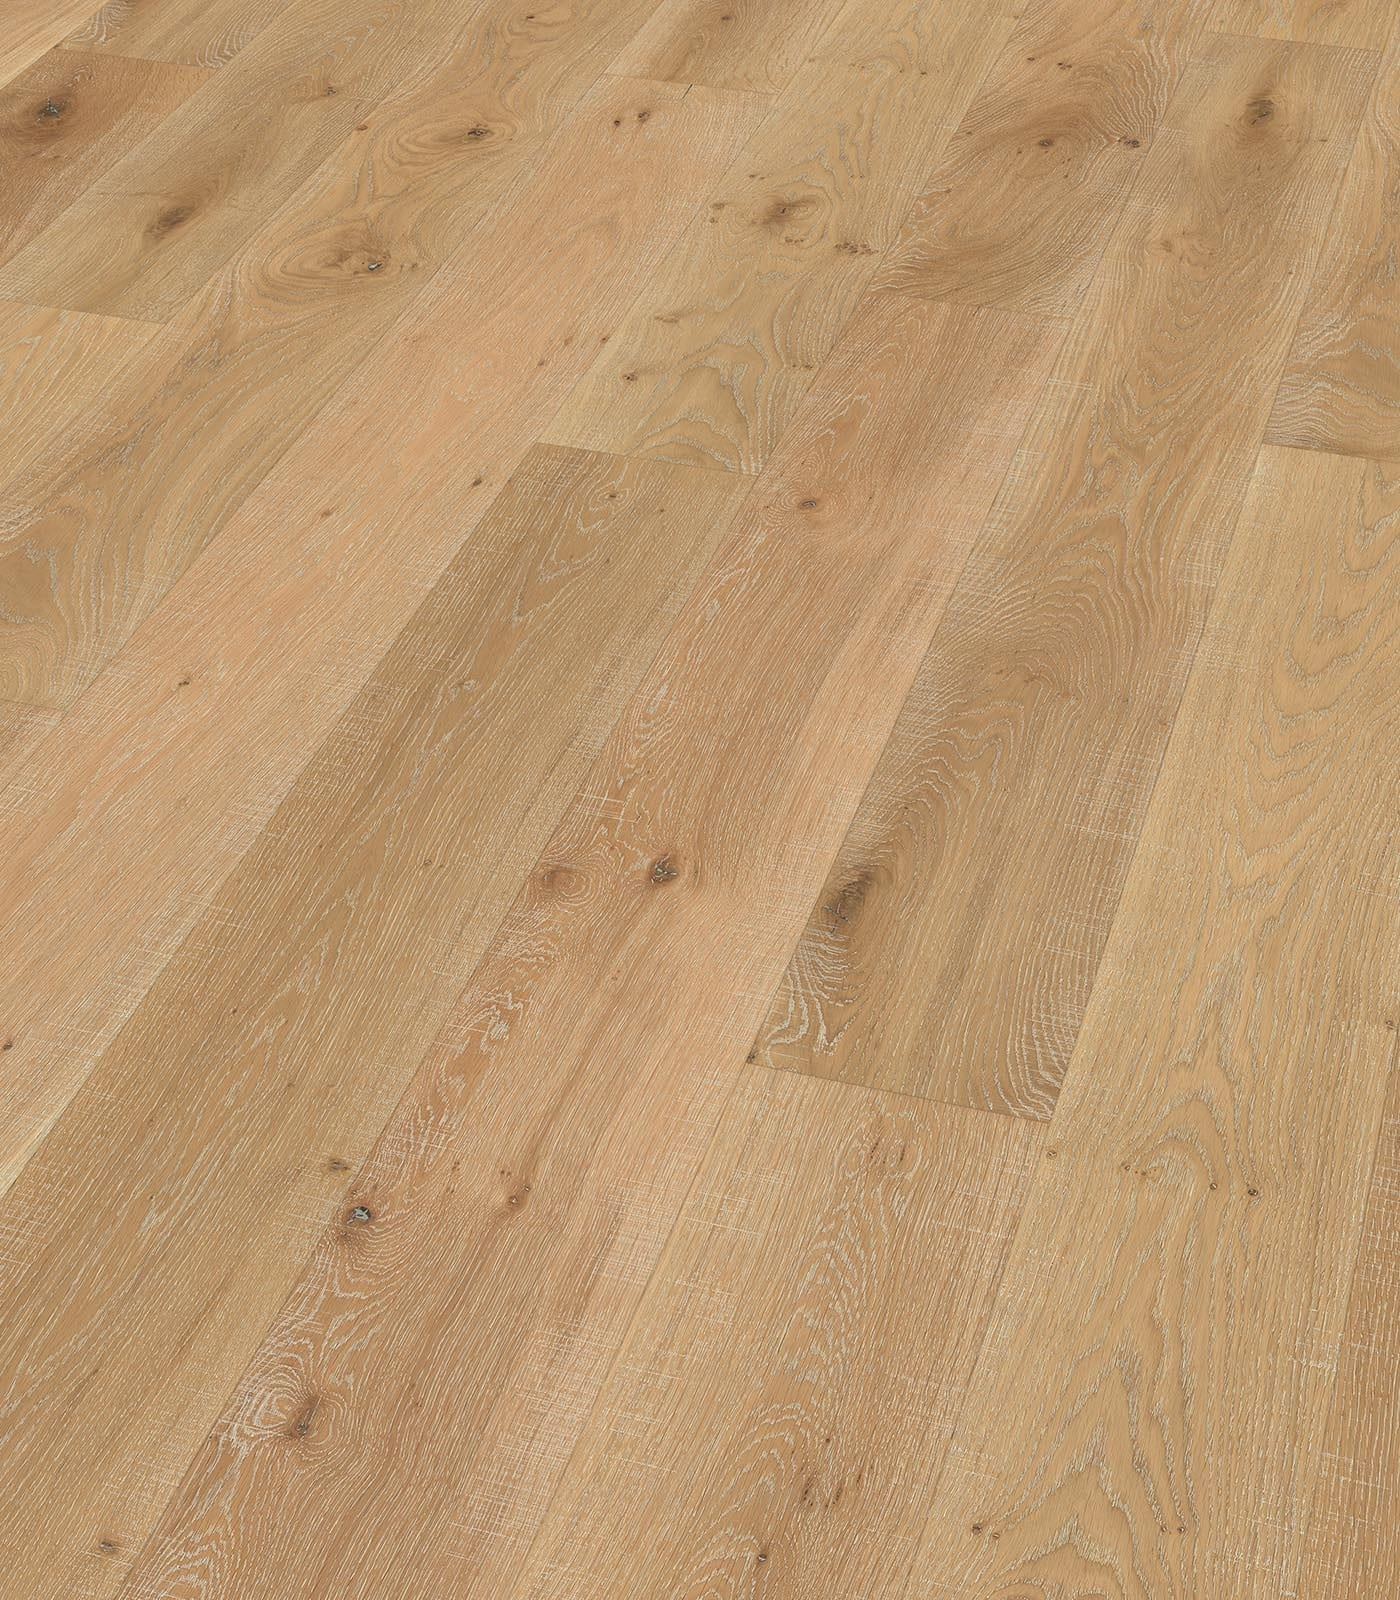 K2-European Oak Floors-Antique Collection-angle